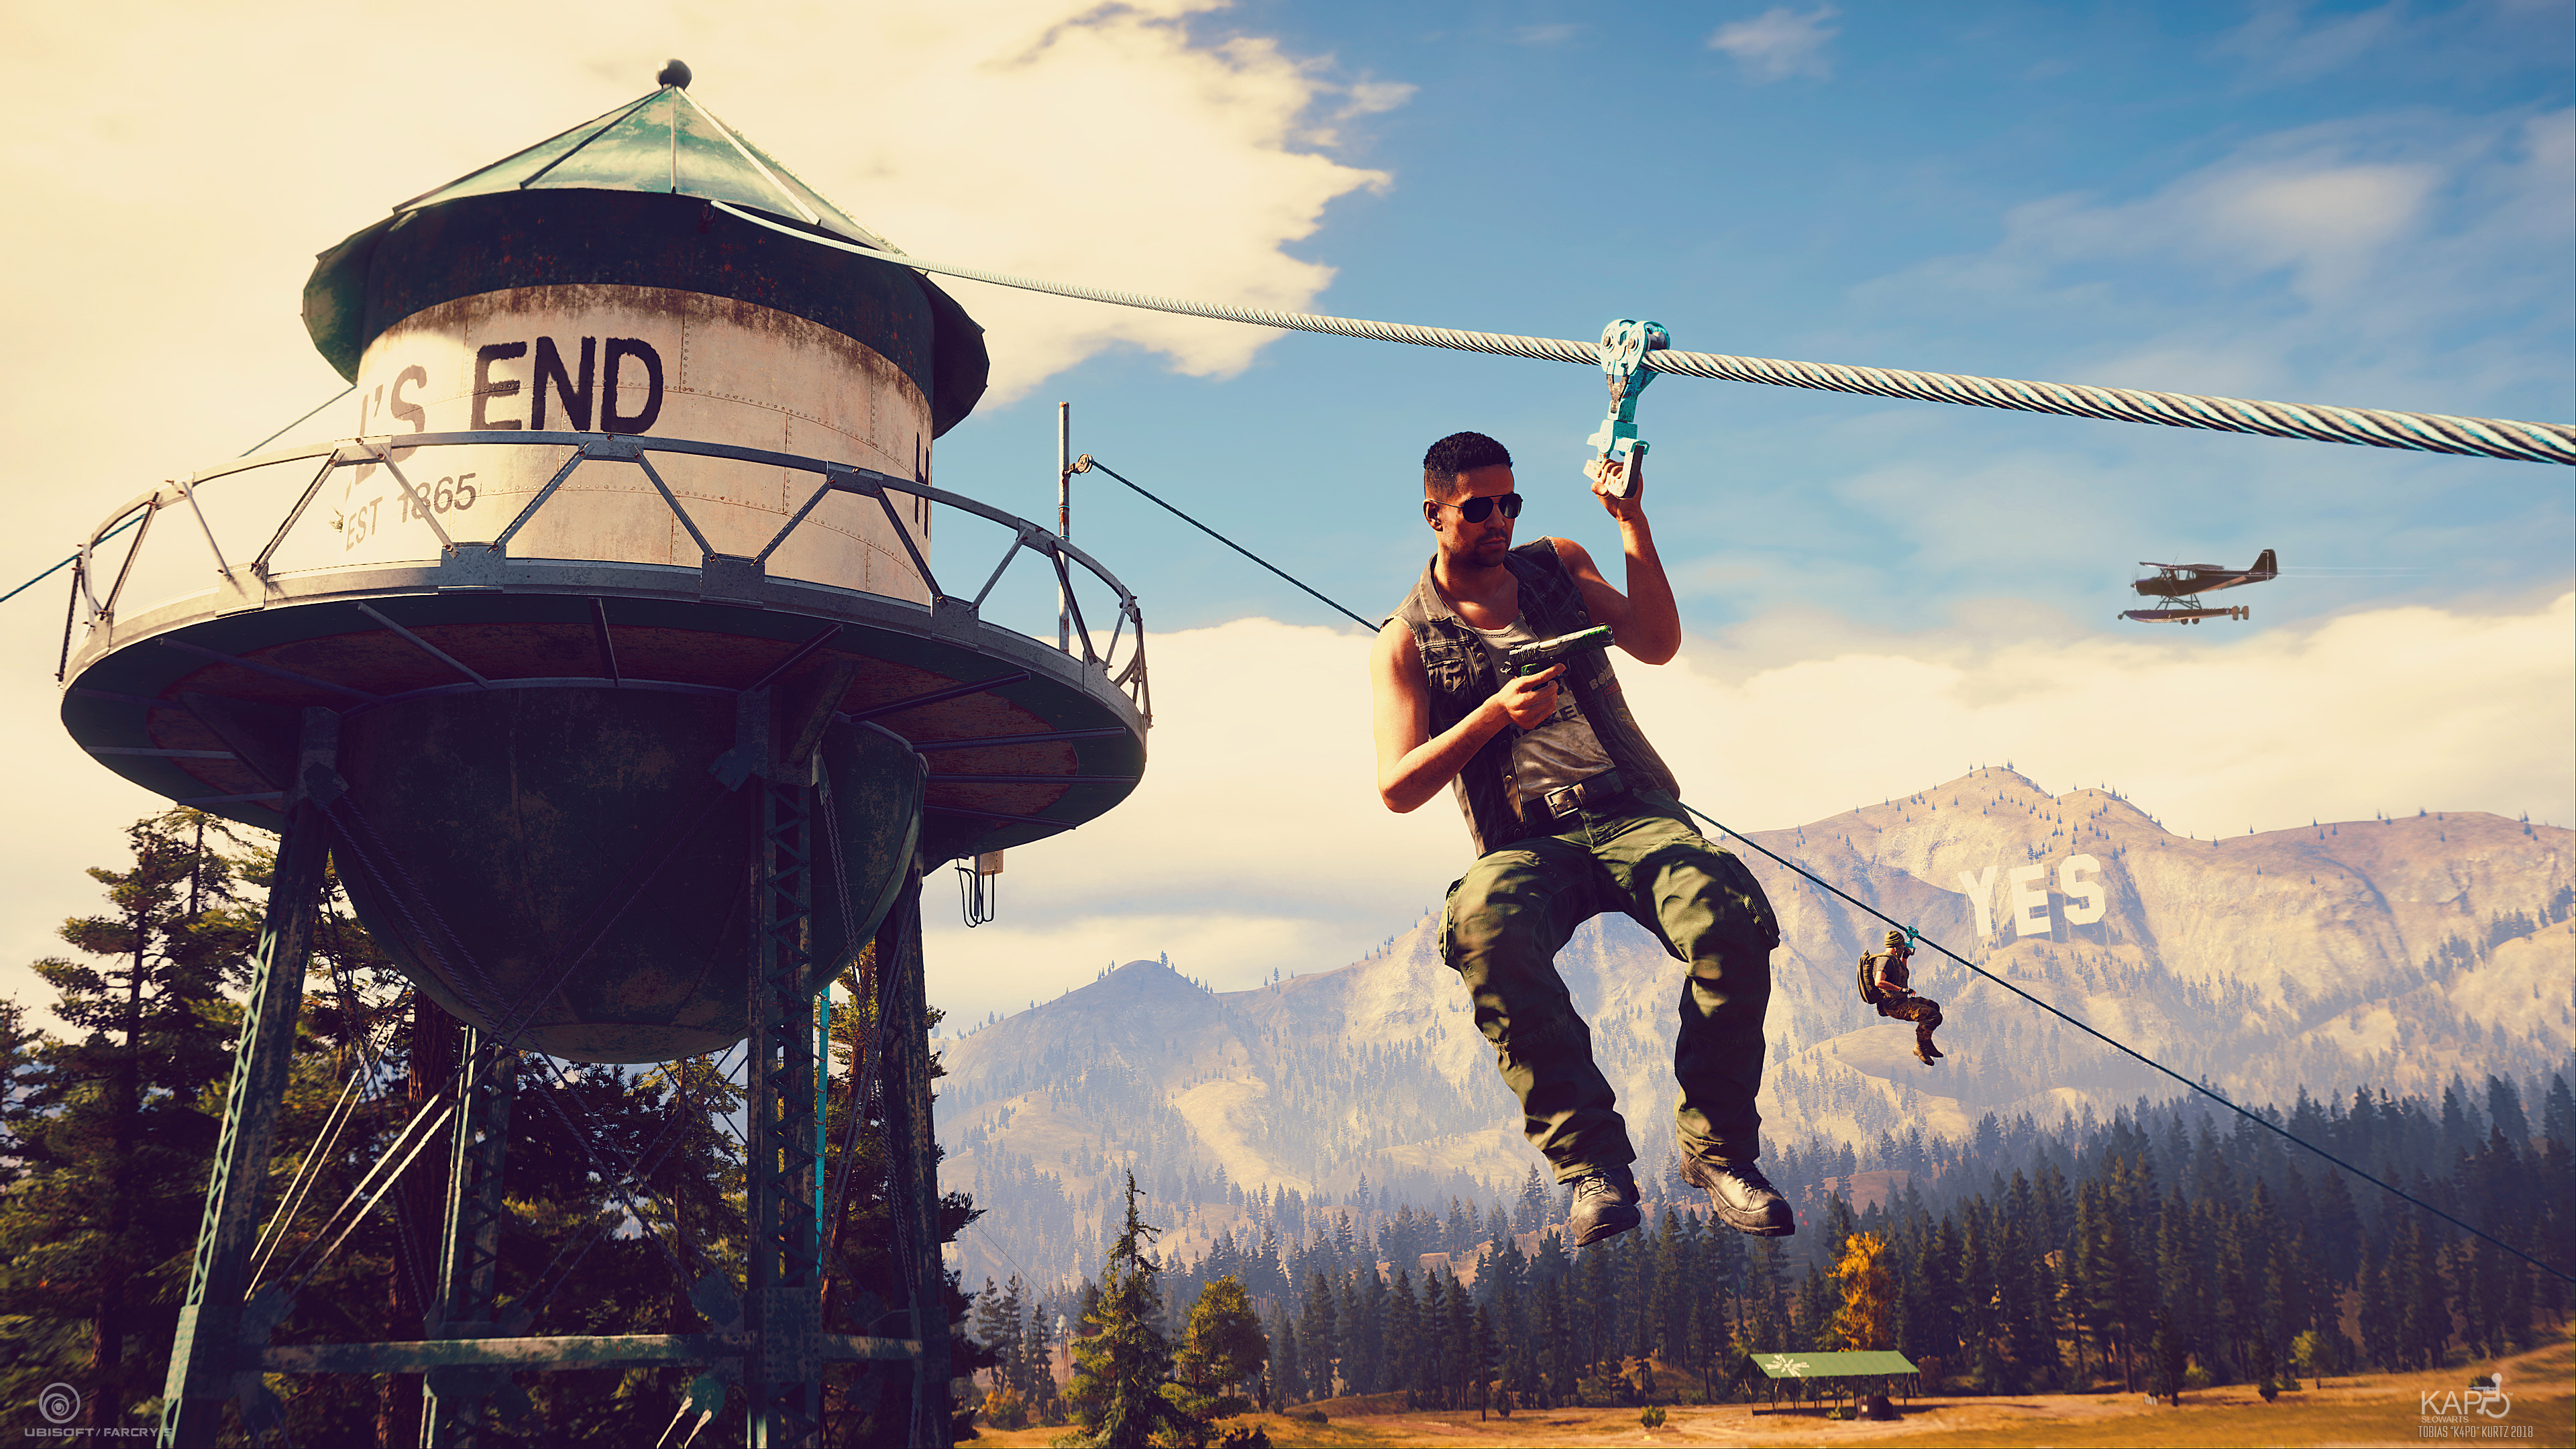 Far Cry 5 Wallpaper Hd: Far Cry 5 4k, HD Games, 4k Wallpapers, Images, Backgrounds